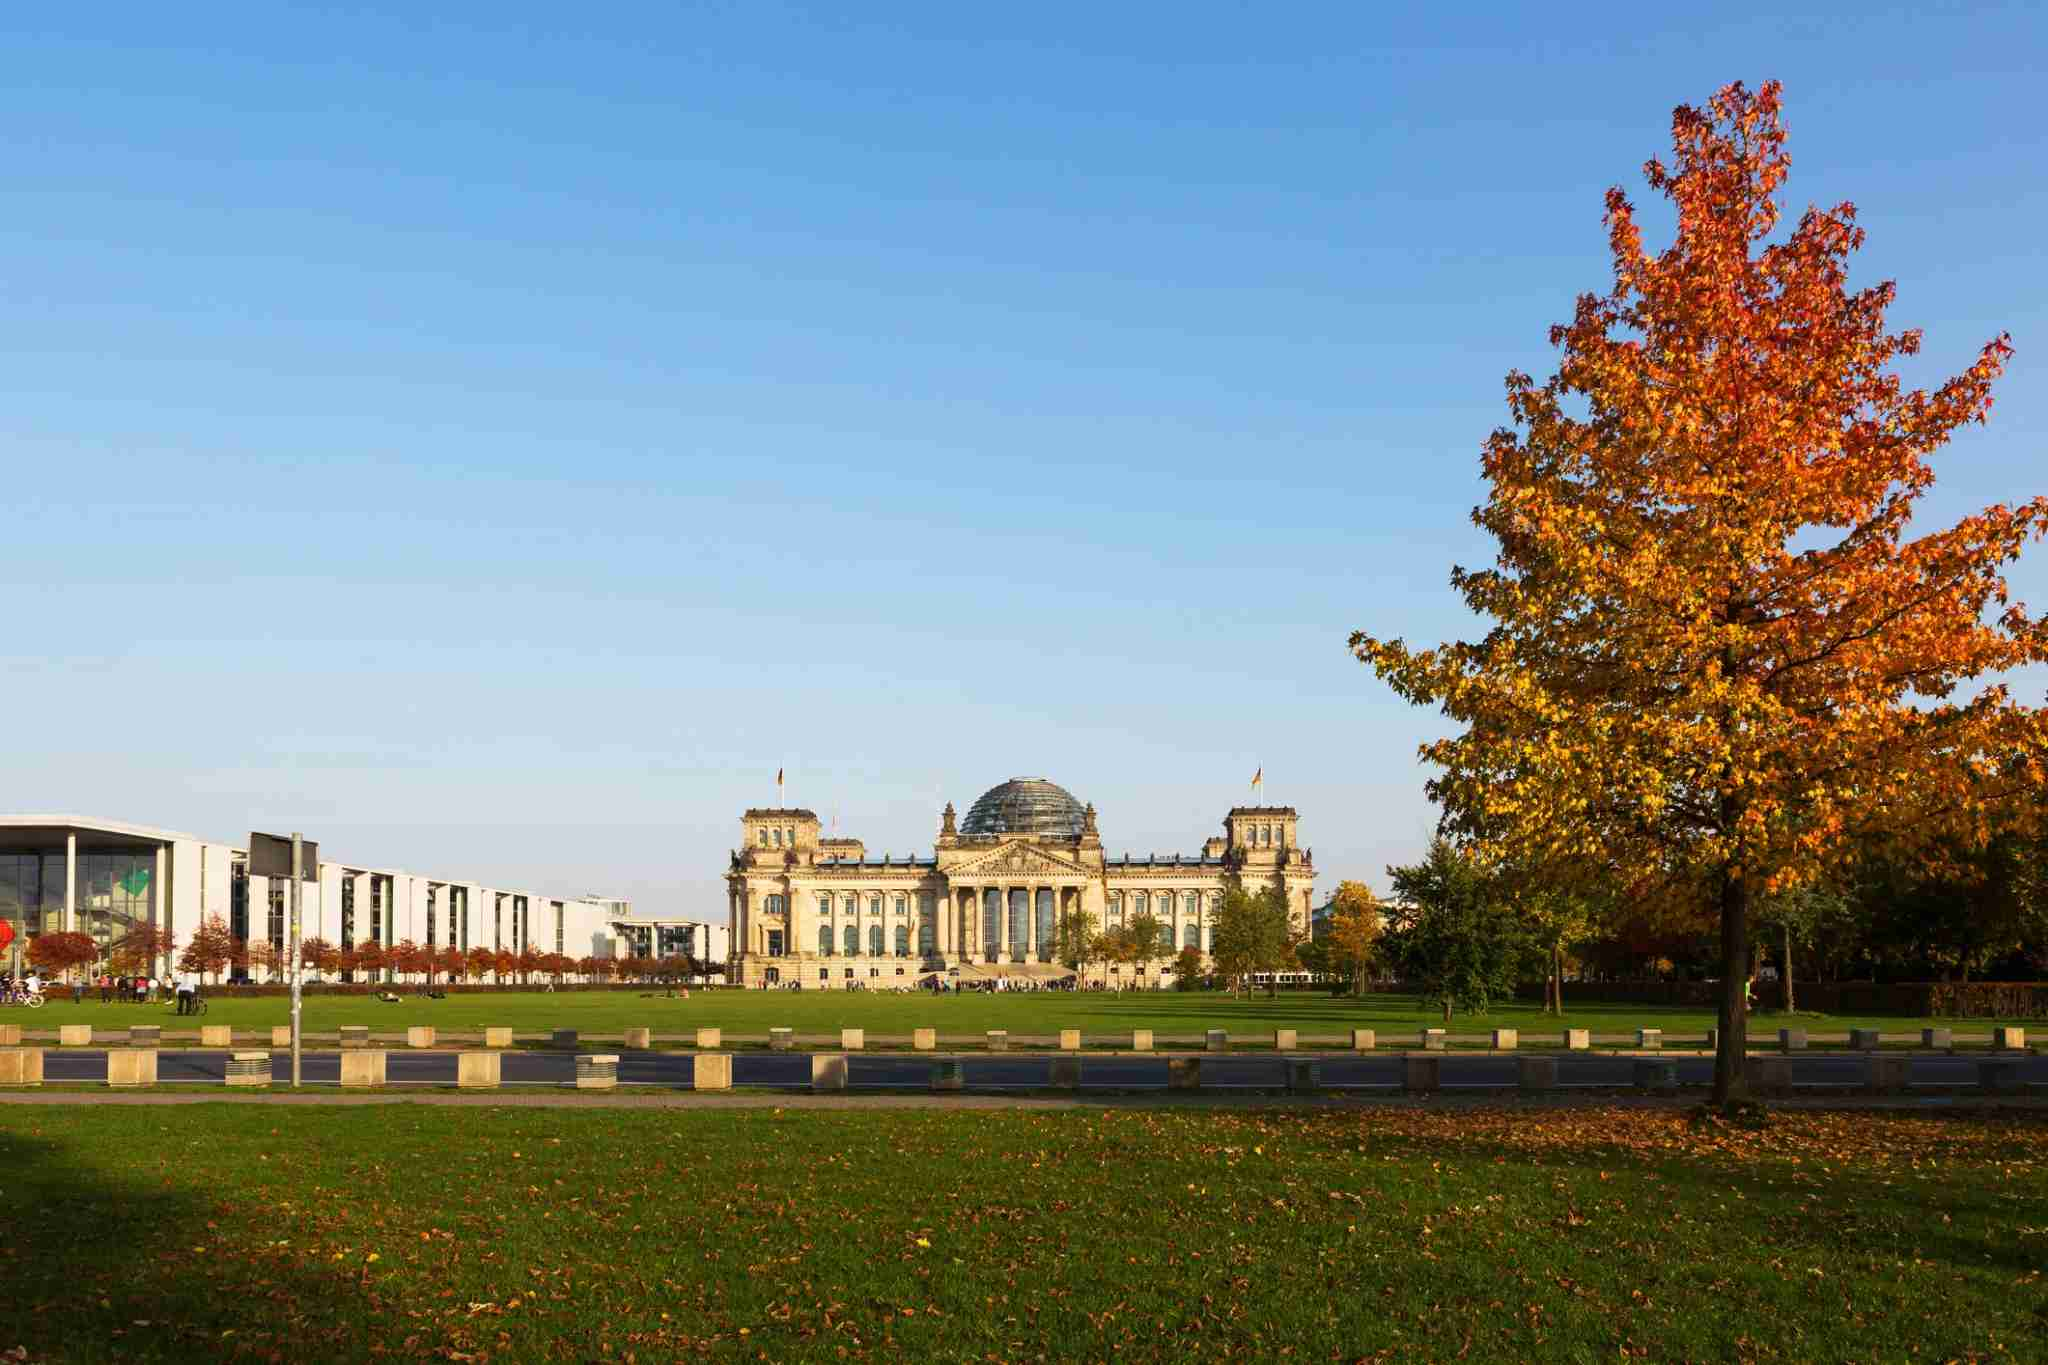 Image of the Reichstag building in Berlin by fhm / Getty Images.